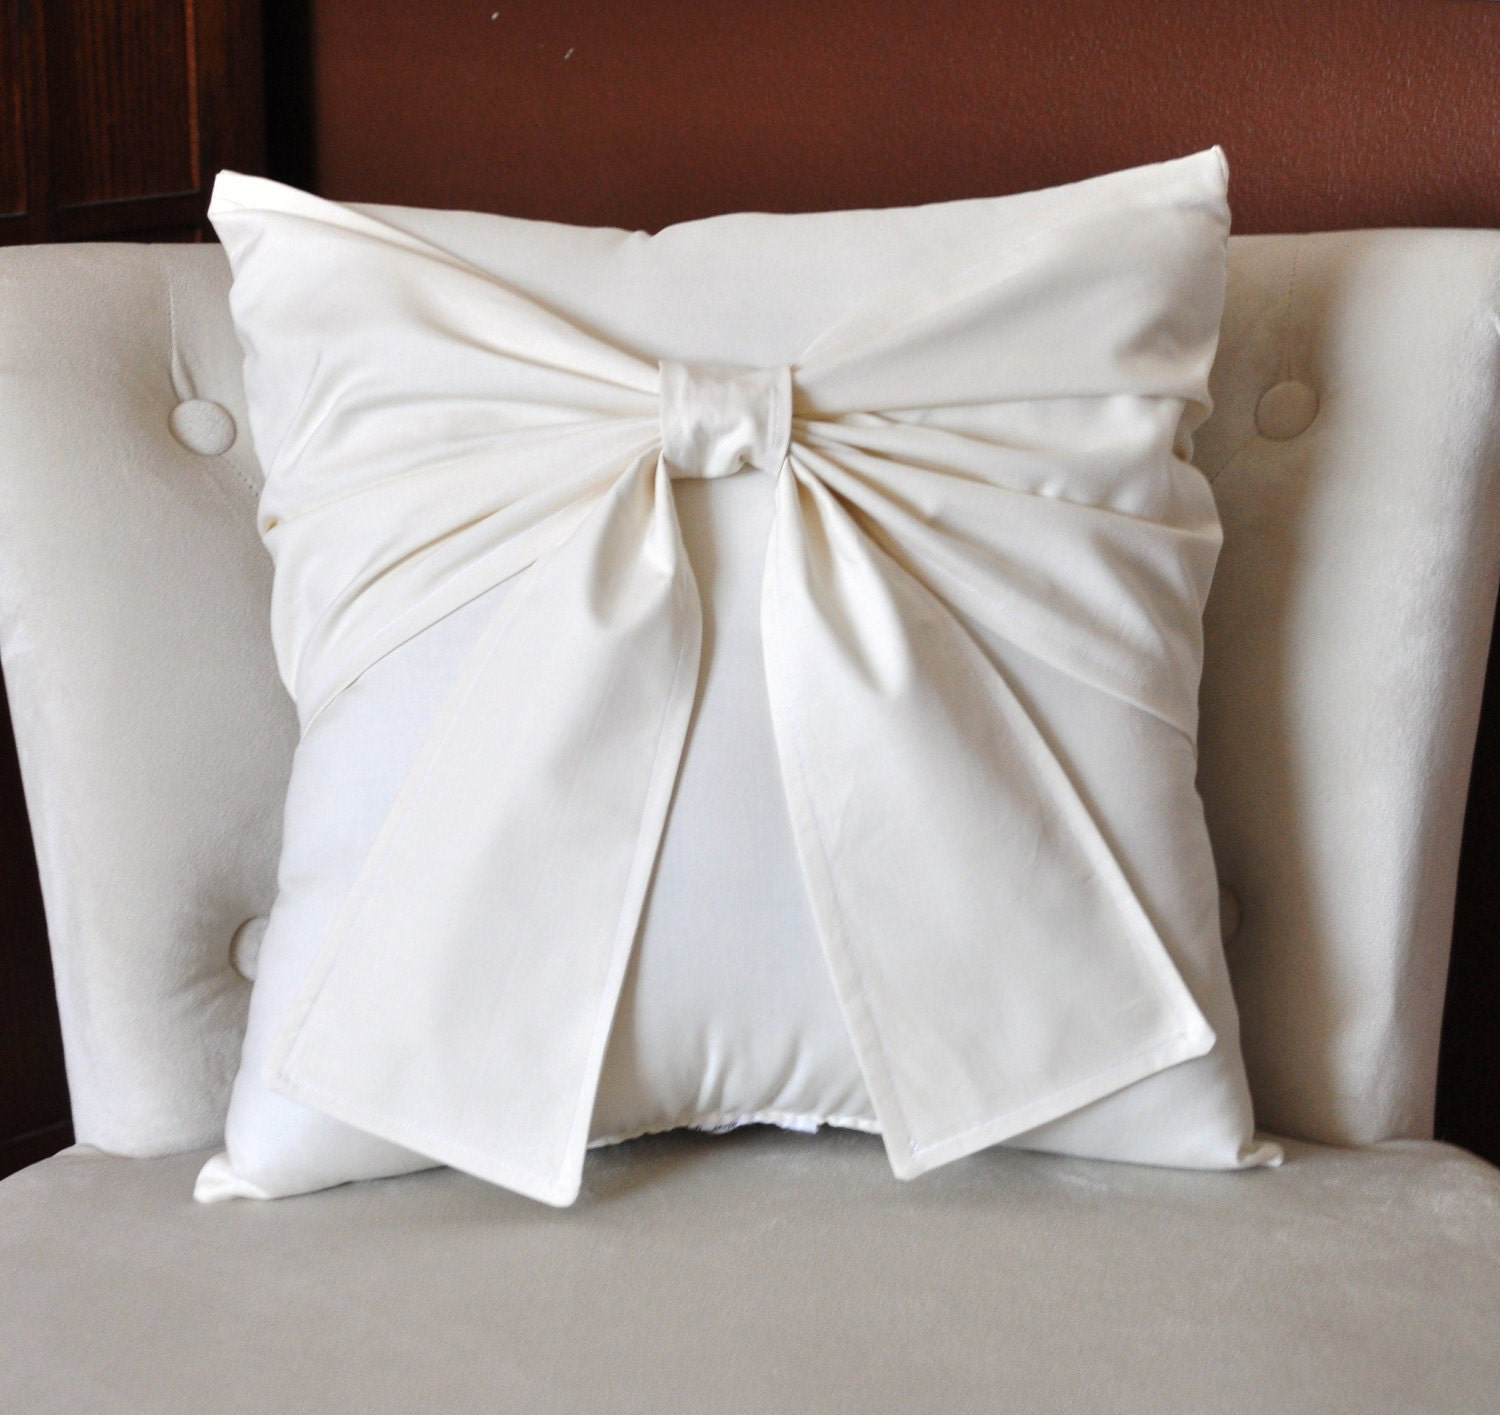 Decorative Pillows Etsy : Cream Bow Pillow Decorative Pillow 16 x 16